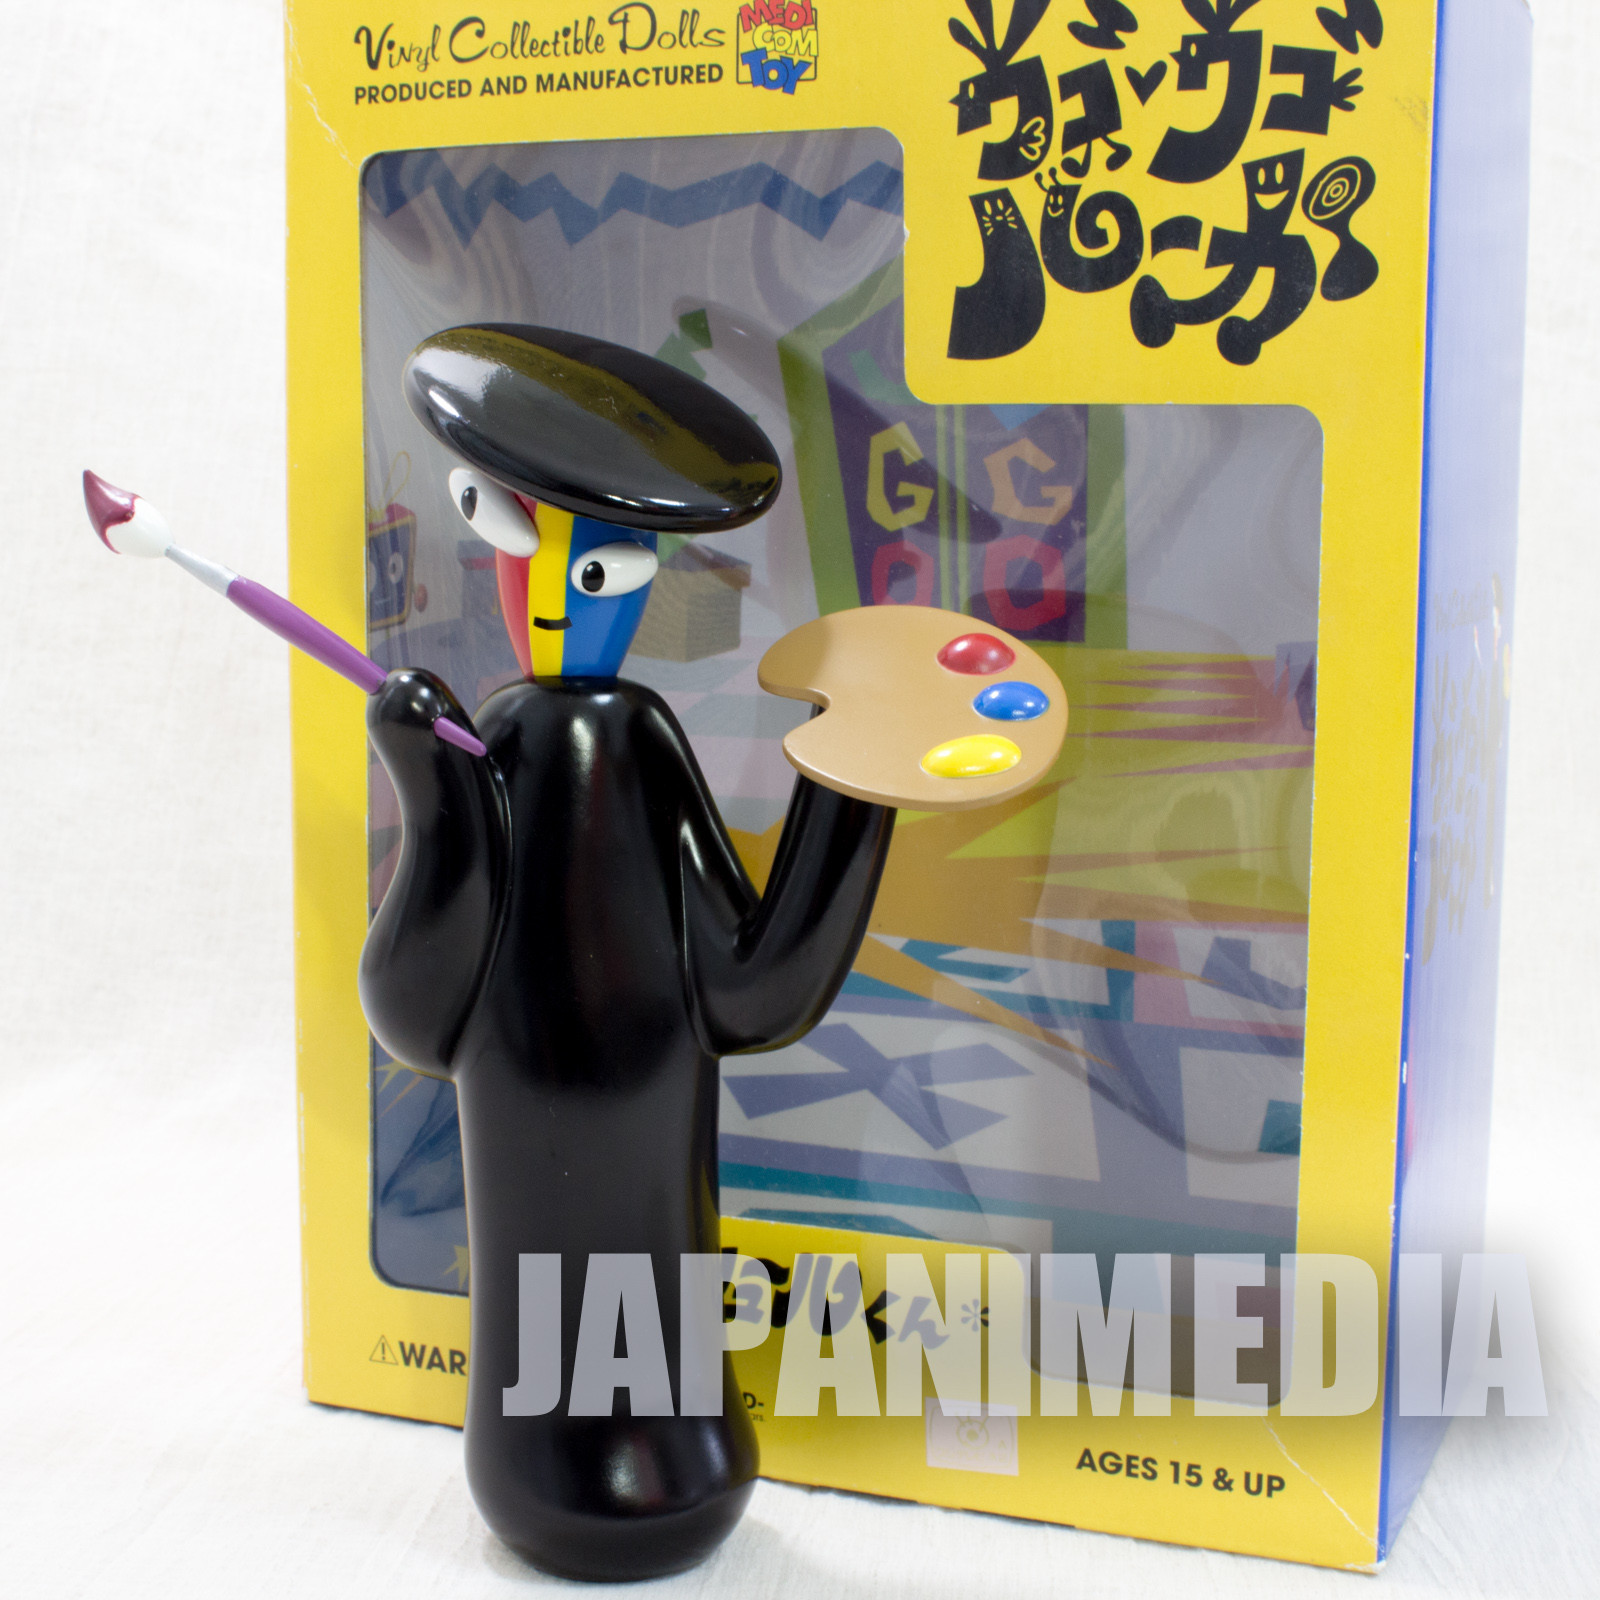 UgoUgo Luga Shuru Kun Surrealism Figure VCD Medicom Toy JAPAN ANIME MANGA